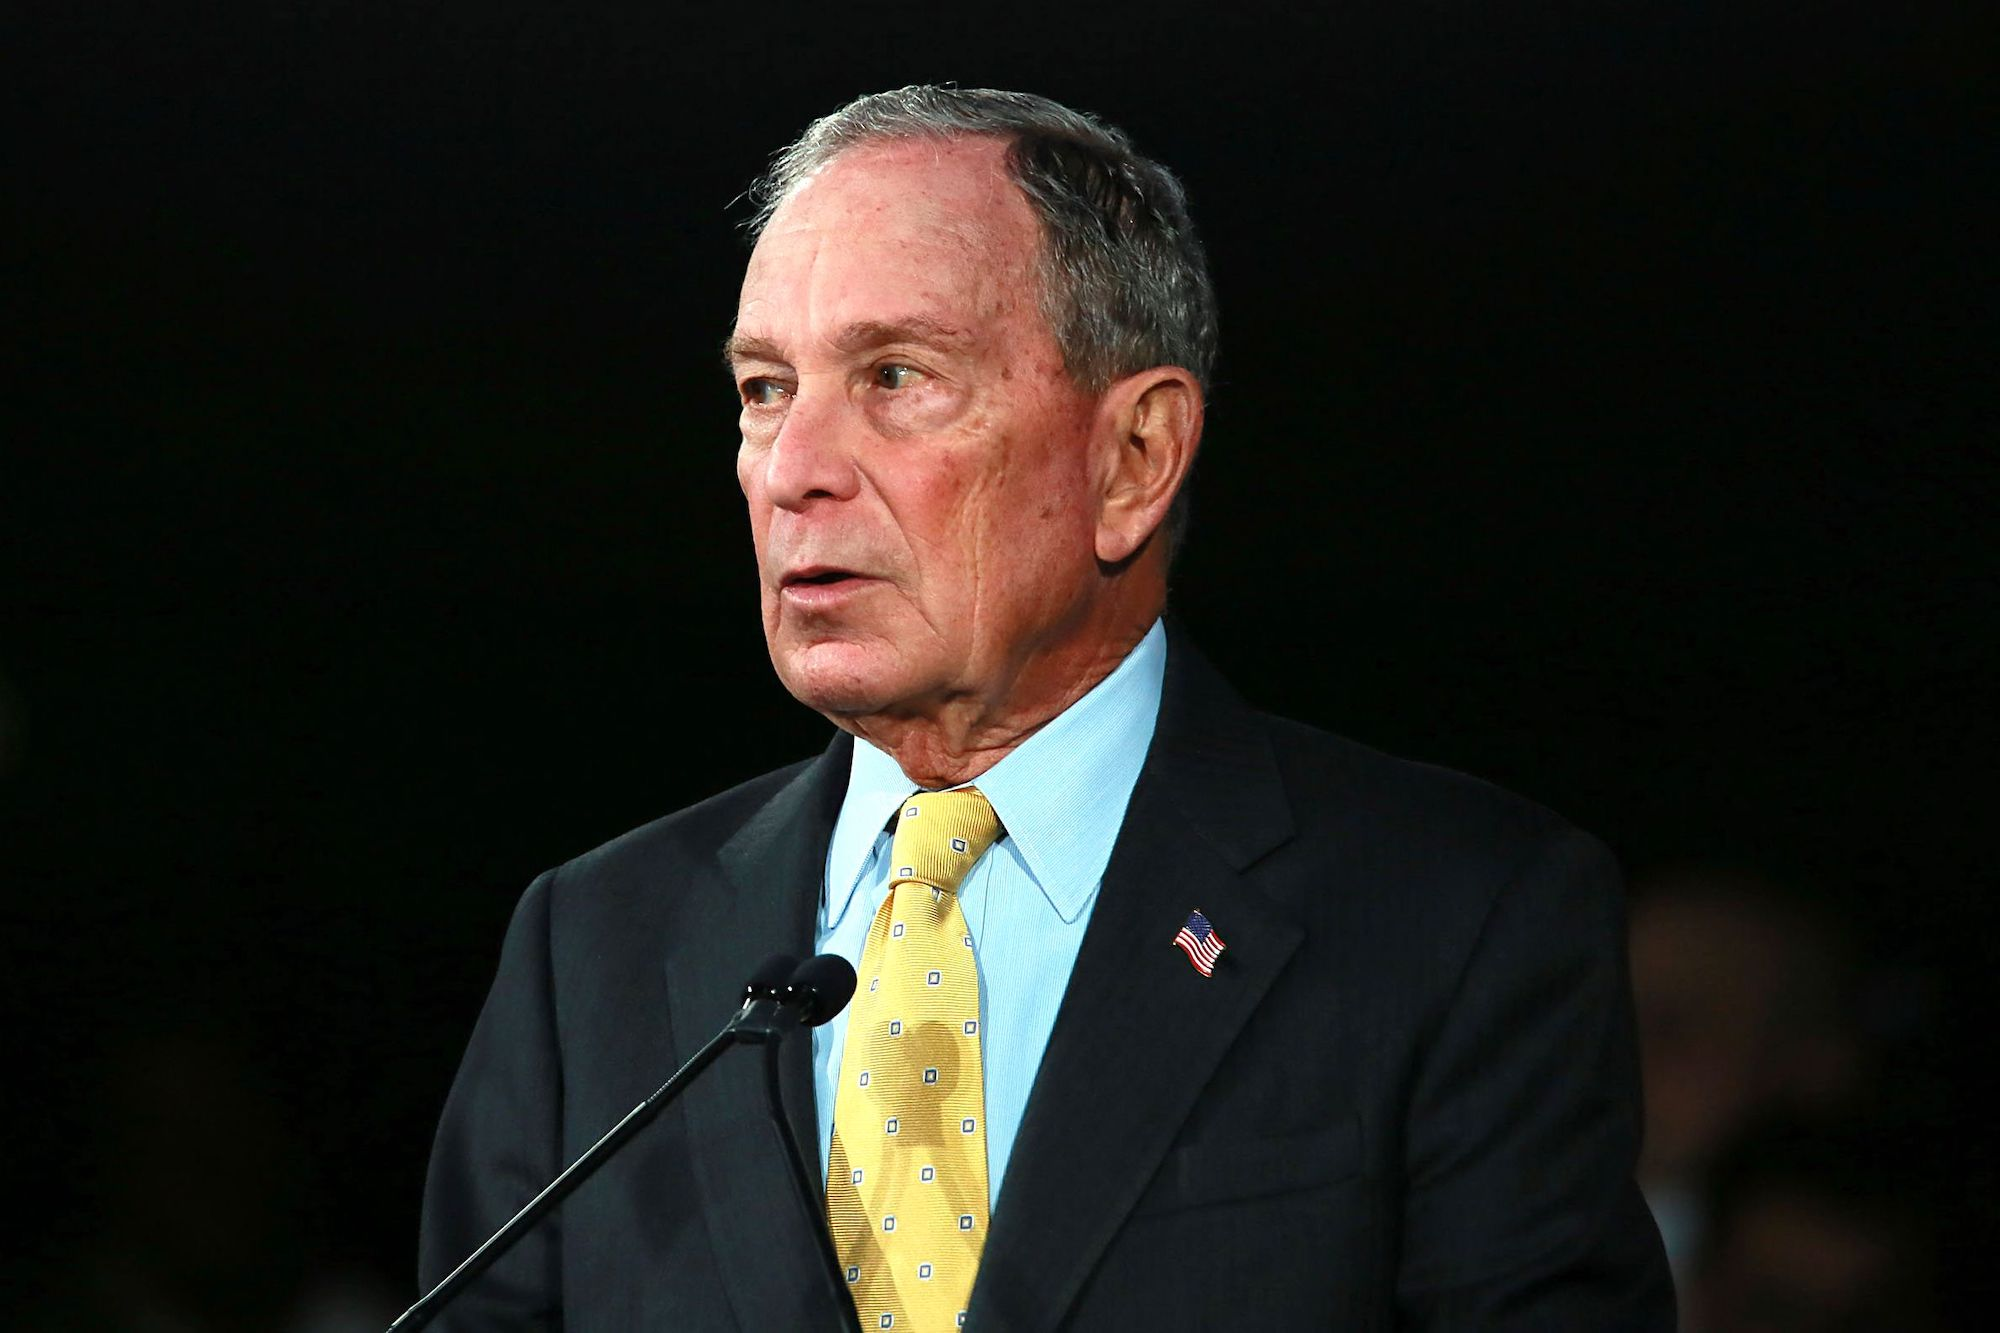 Bloomberg Said Ending Discriminatory Housing Practices Caused Financial Crisis